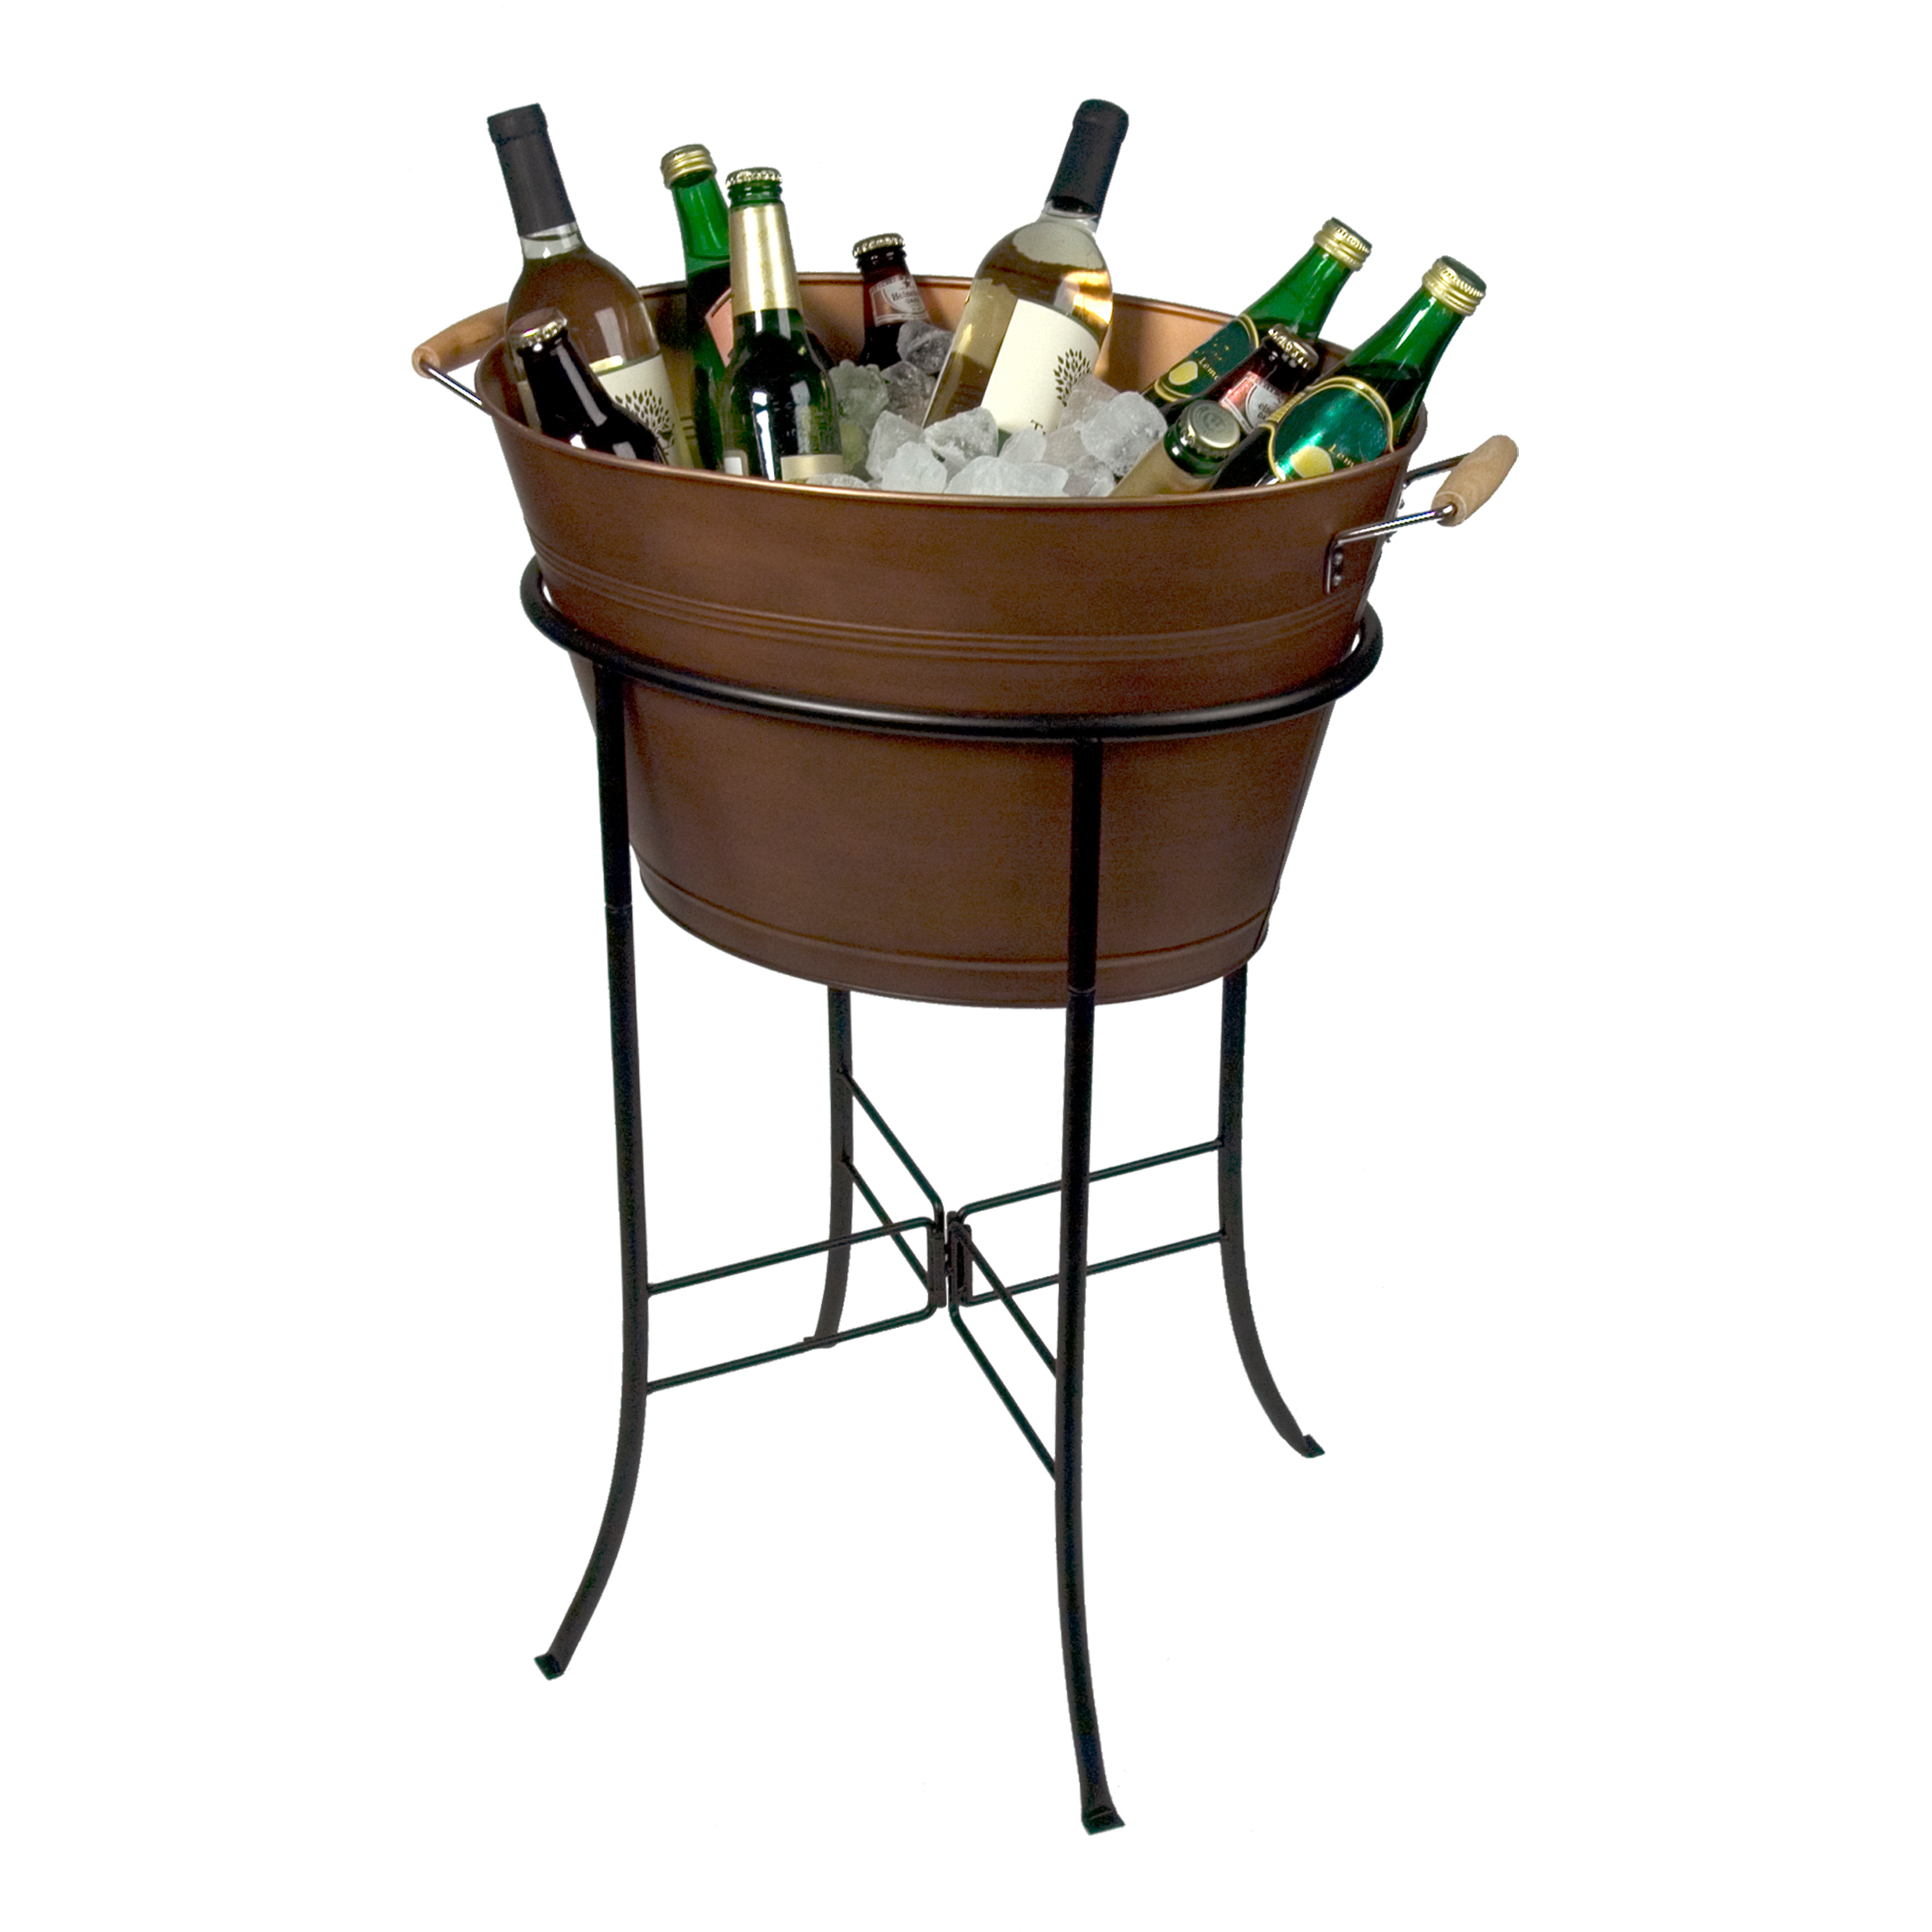 Artland Oasis Distressed Antiqued Copper Finish Oval Party Tub with Stand